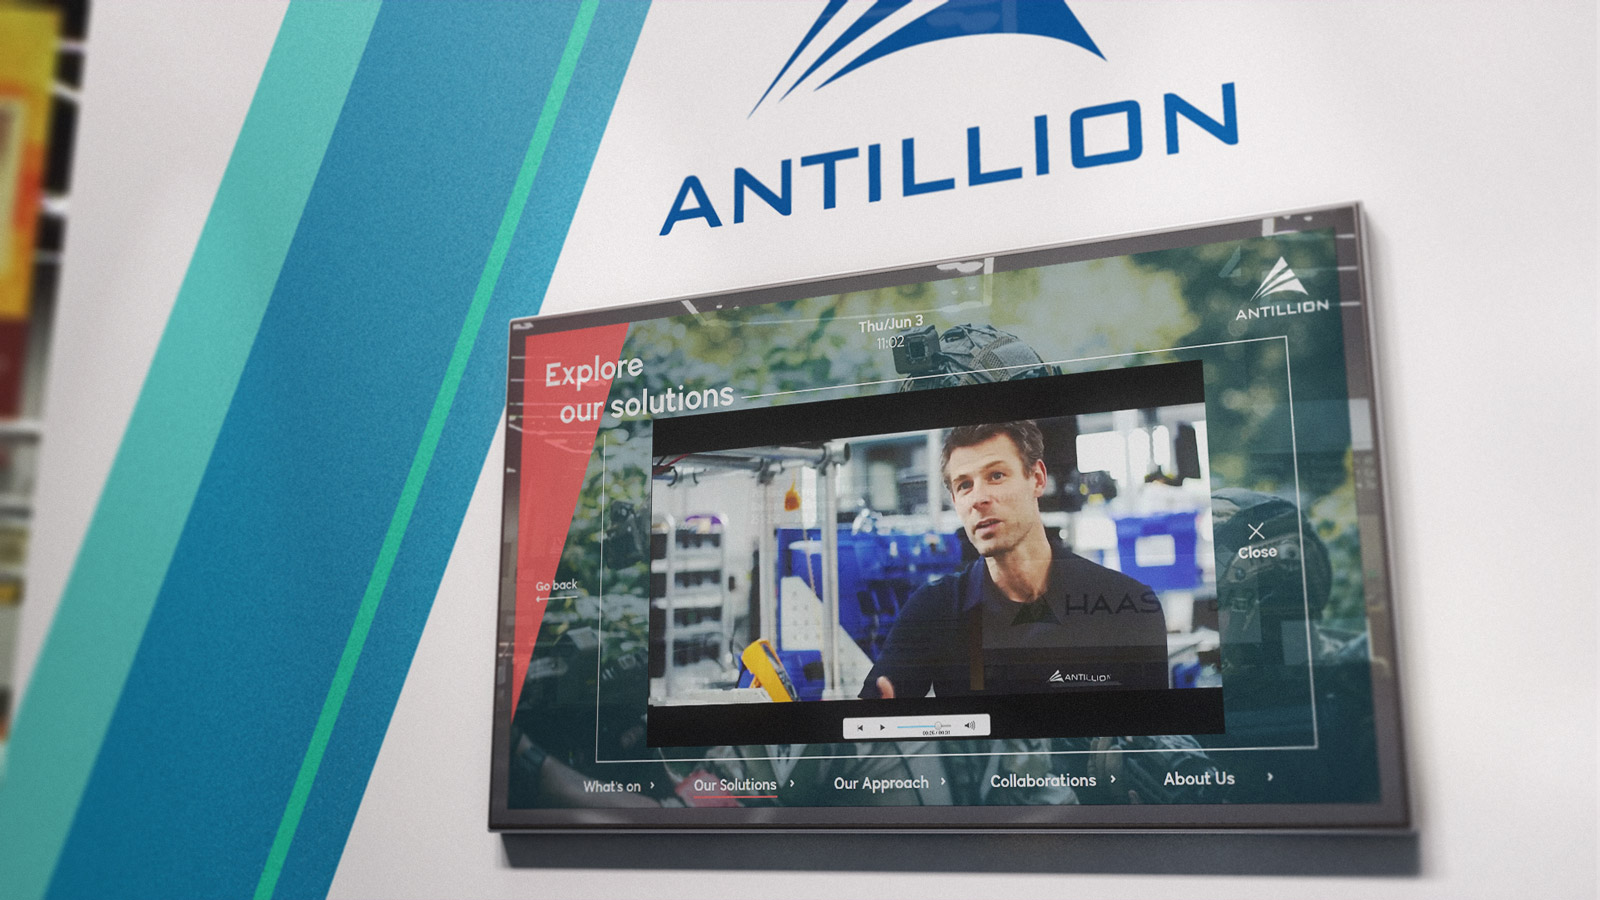 Antillion interactive presentation displayed on large screen on office wall